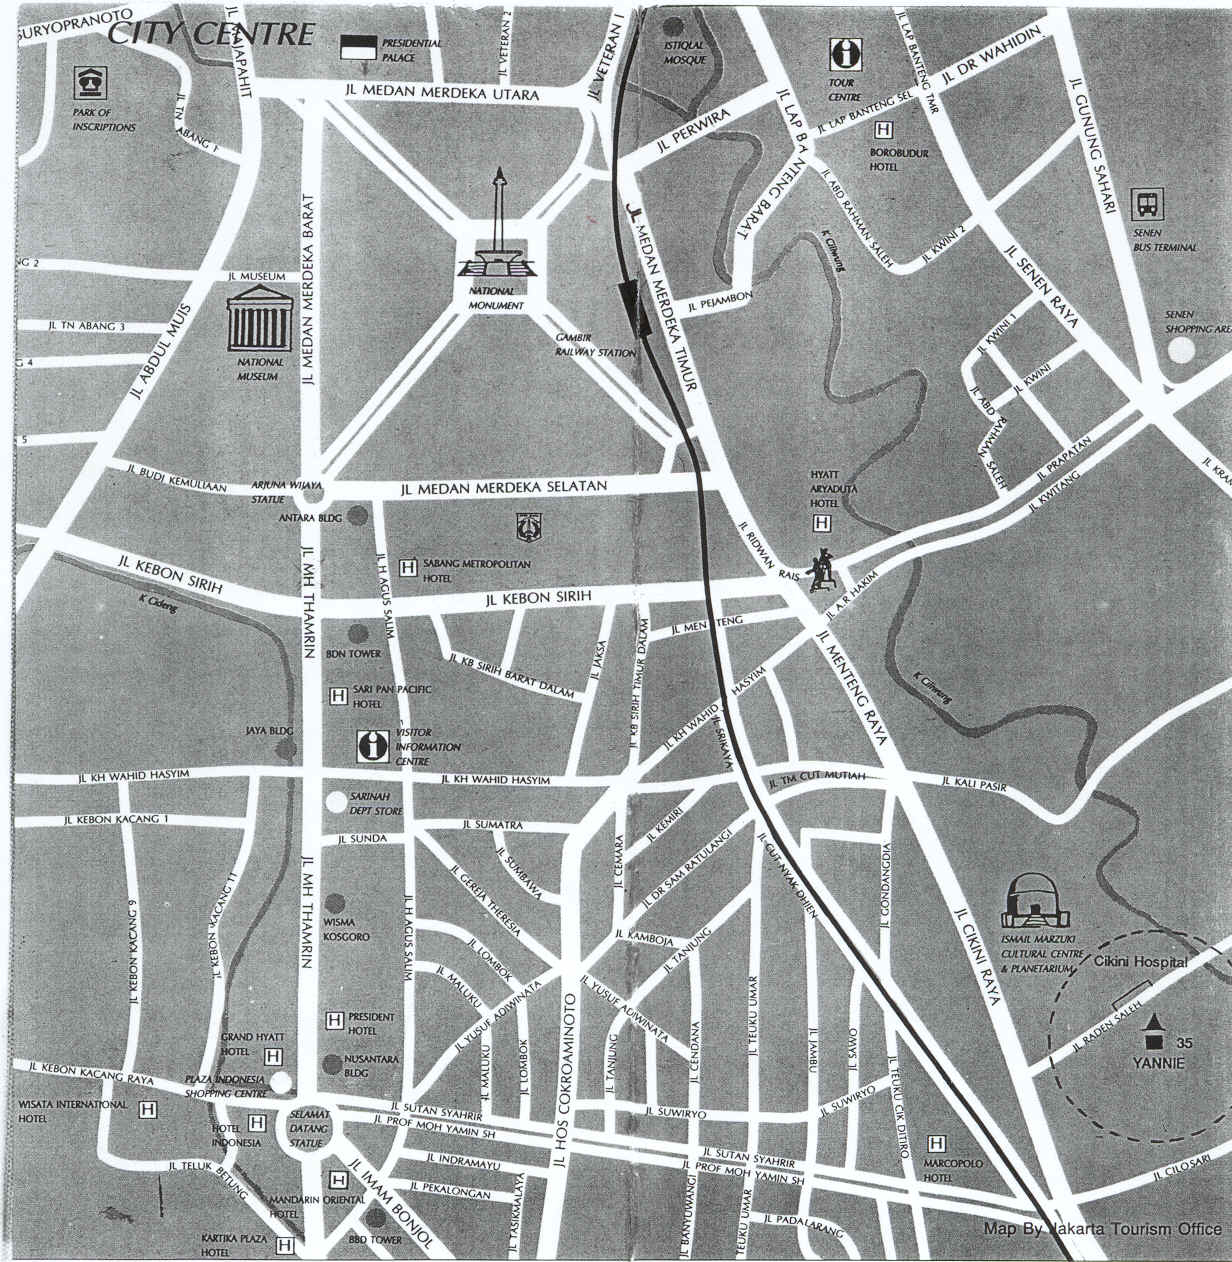 City map sites perry castaeda map collection ut library online jakarta indonesia city center seasite publicscrutiny Image collections